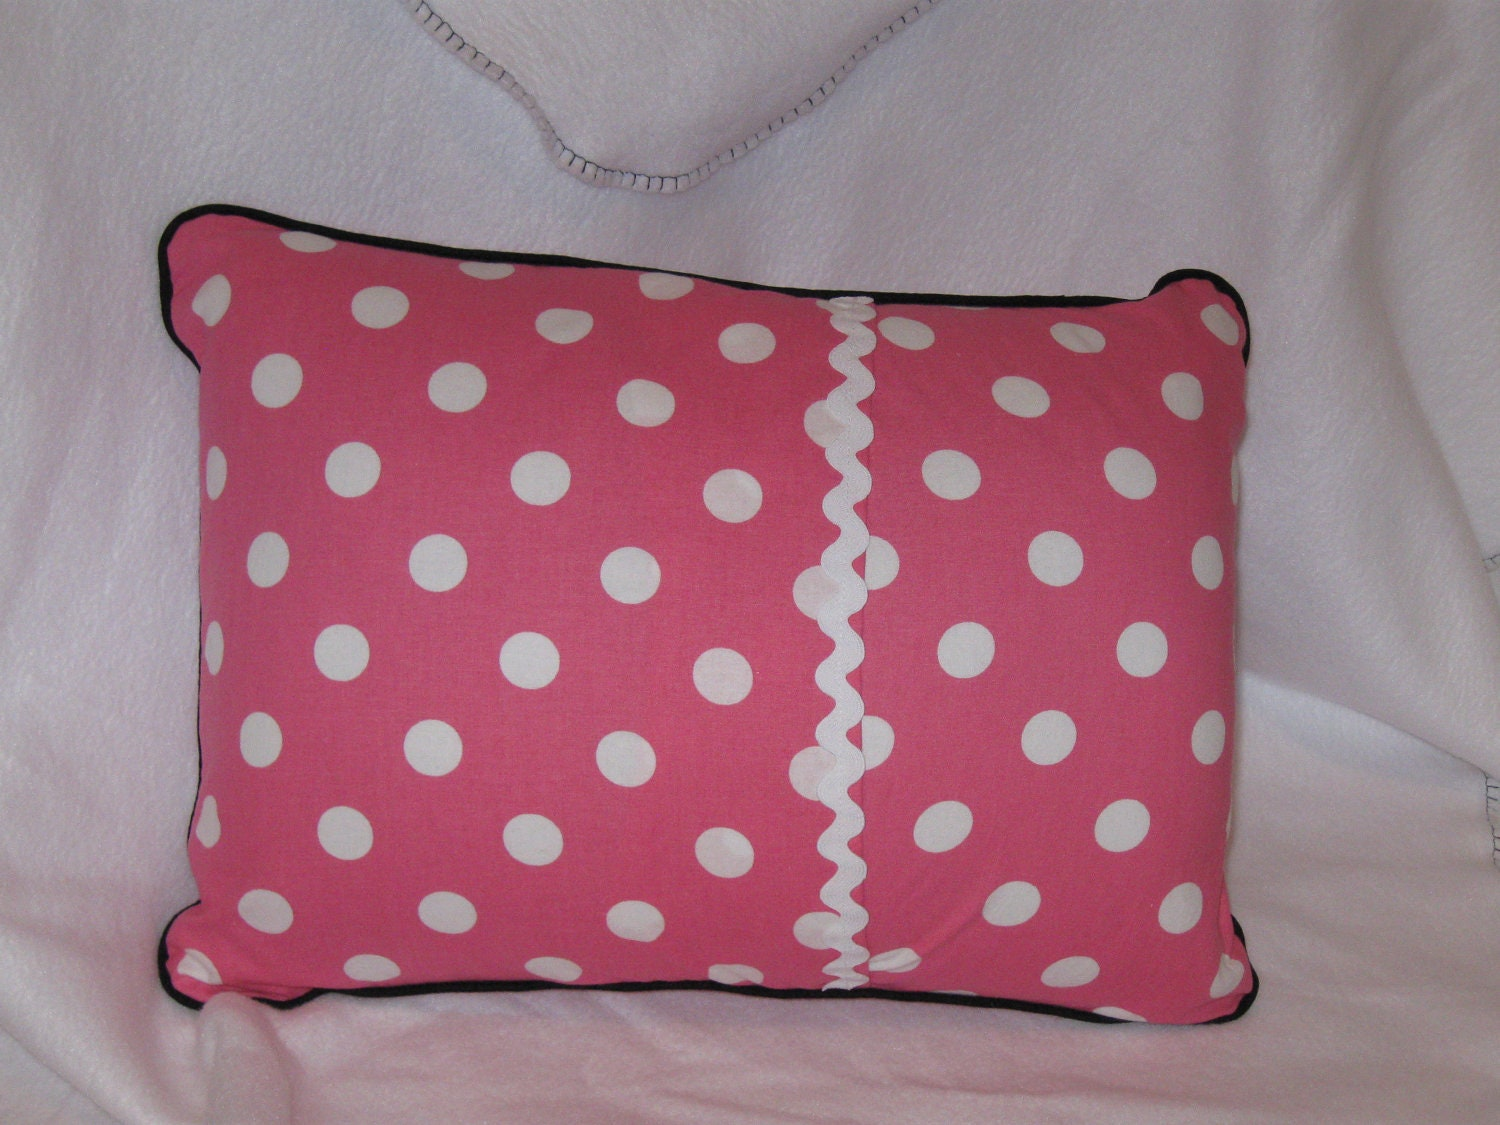 Minnie Throw And Pillow Set : Minnie Mouse Travel Pillow Case or Throw Pillow Pink & White